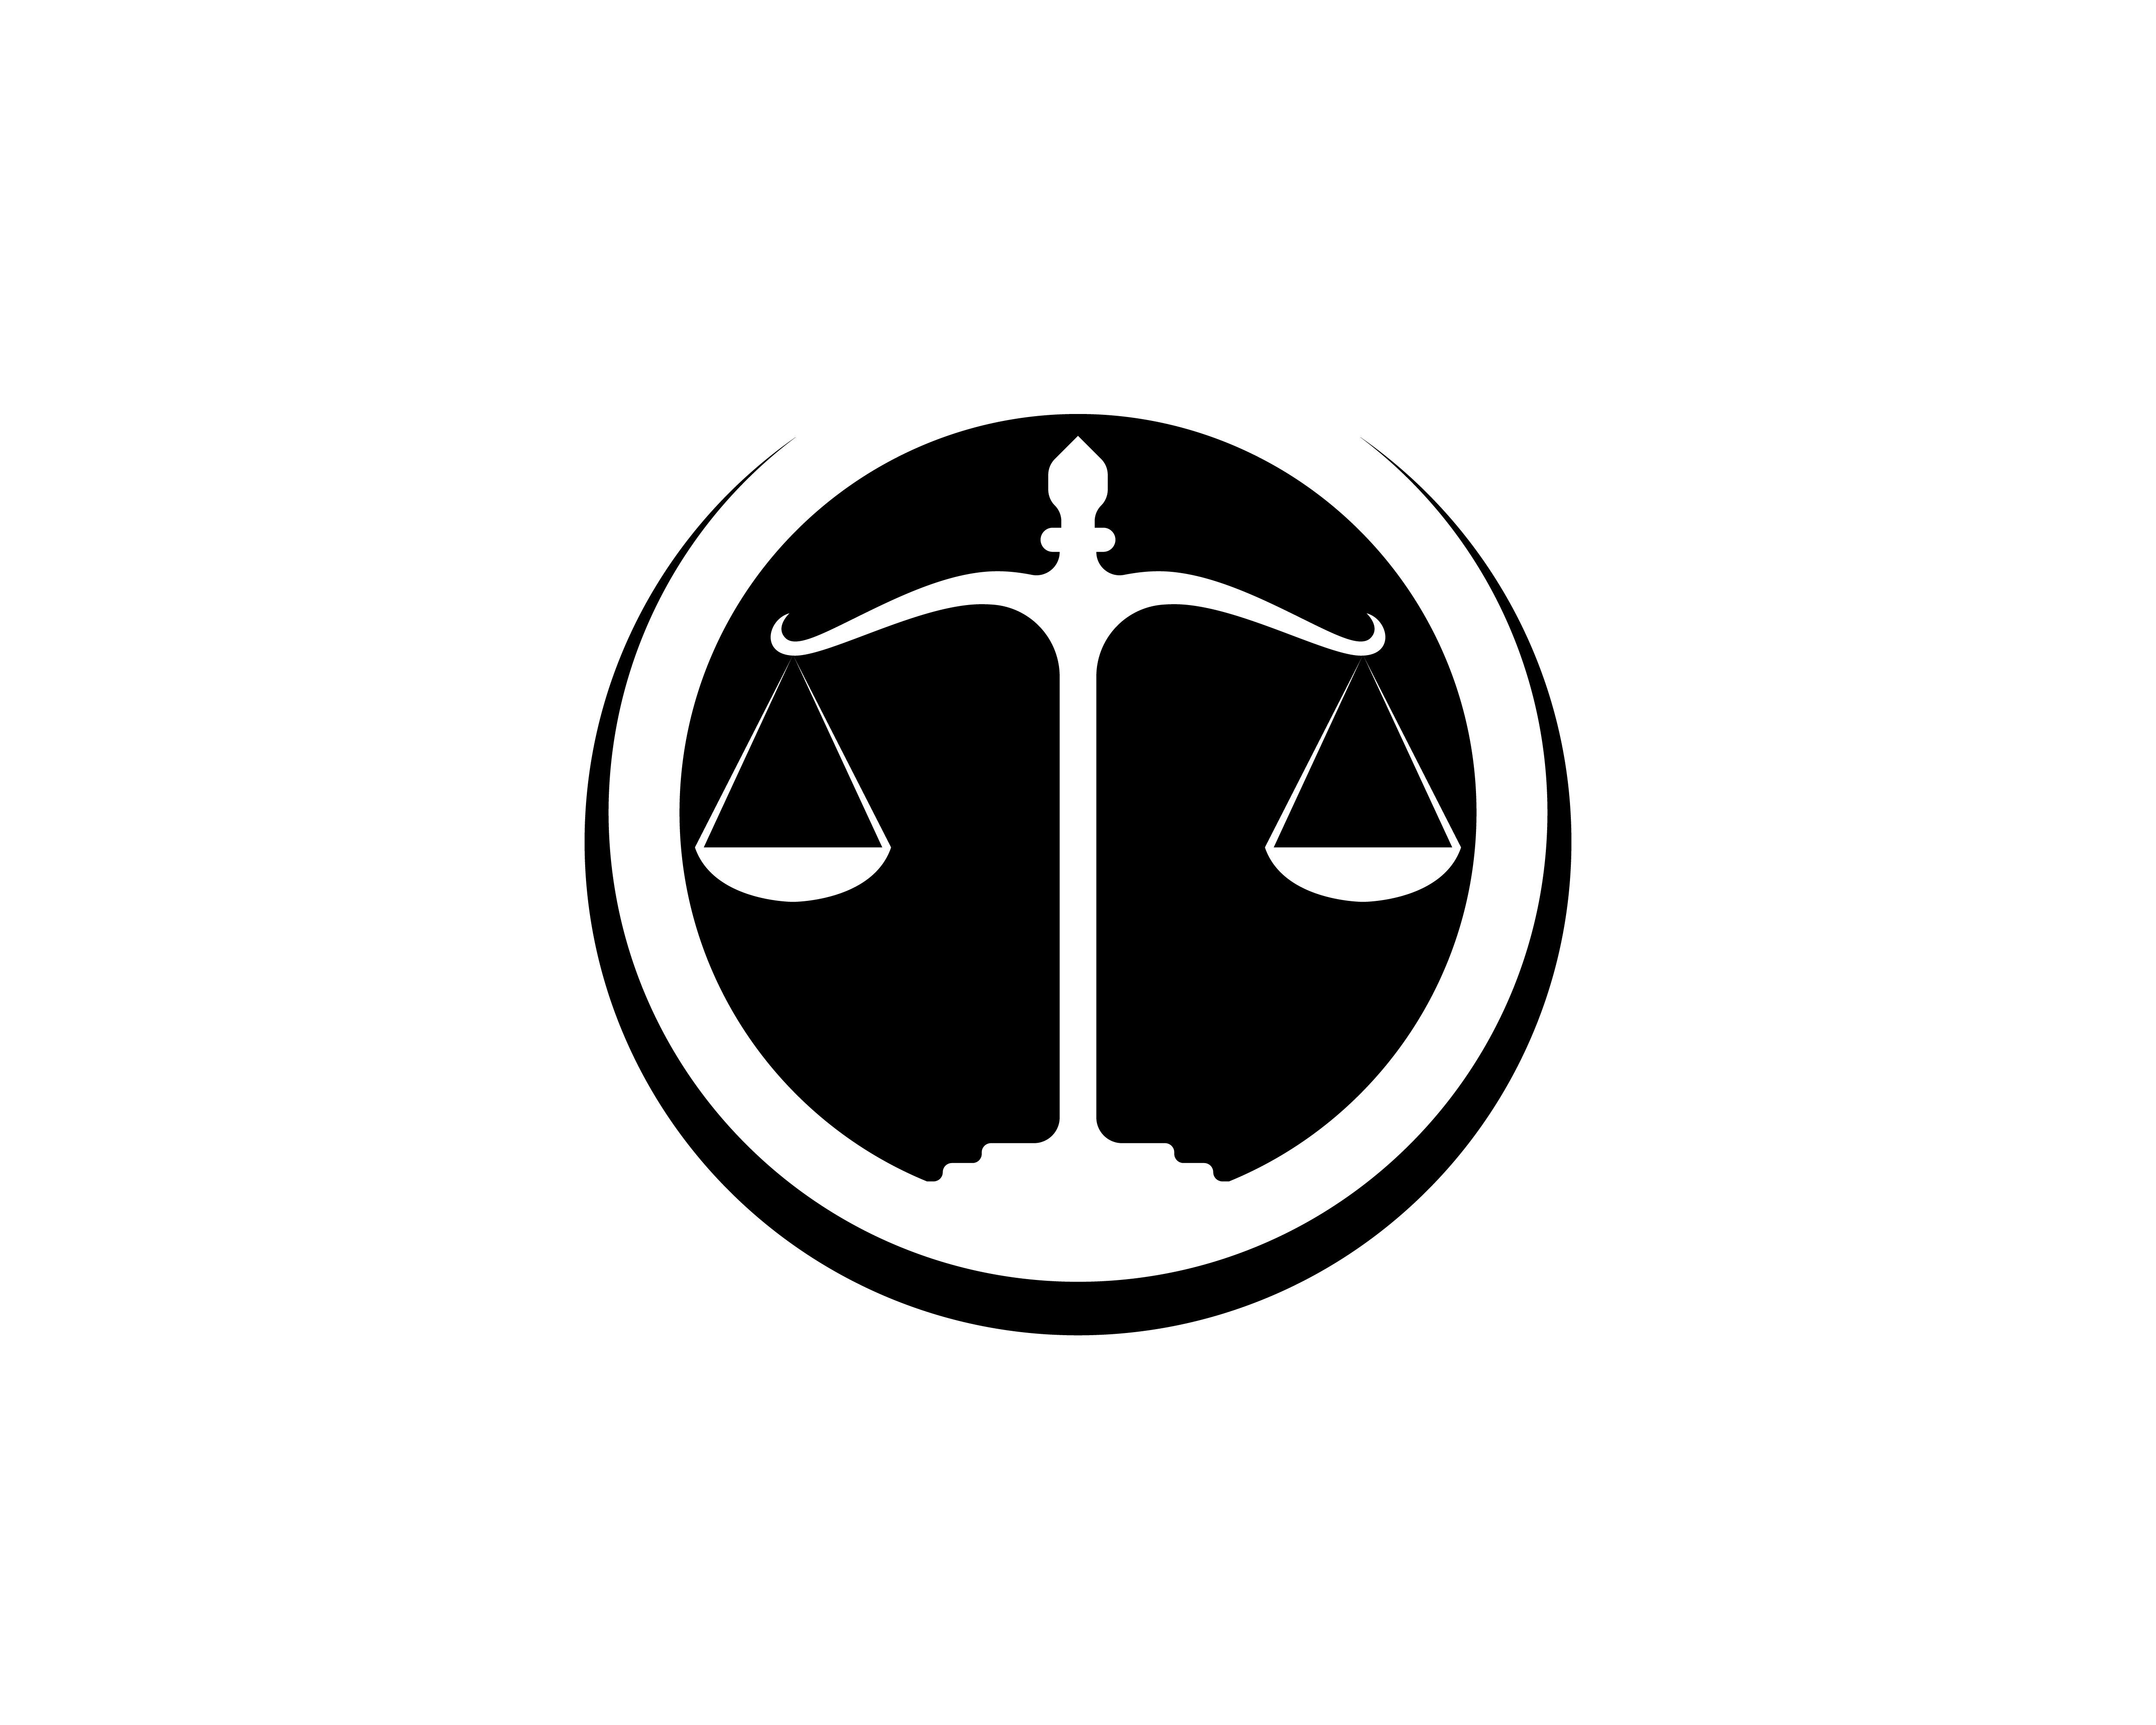 Justice Lawyer Logo And Symbols Template Icons App Lawyer Logo Lawyer Logo Design Law Logos Design